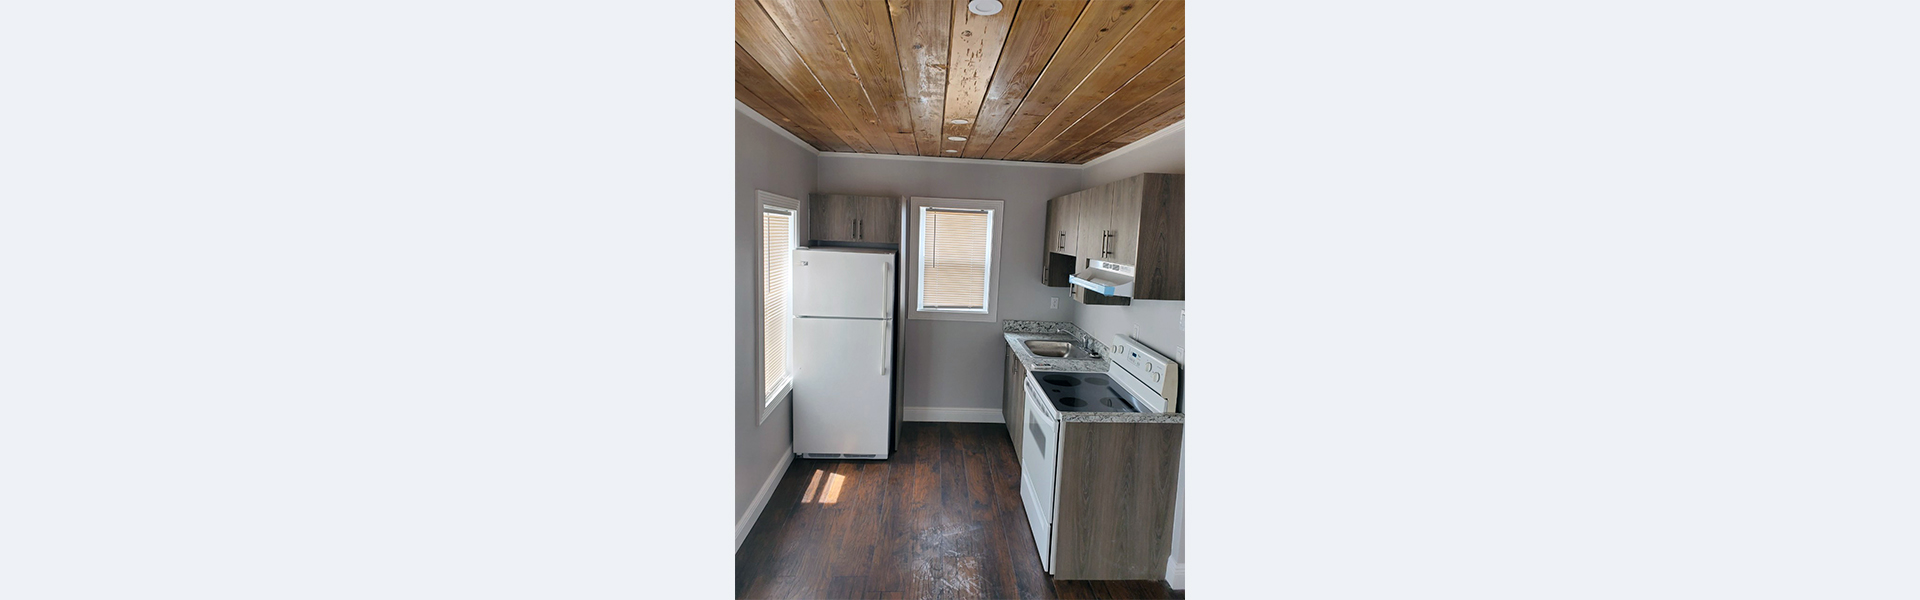 Manufactured Cabin Home for Rent (Studio/Efficiency) - Completely Remodeled!